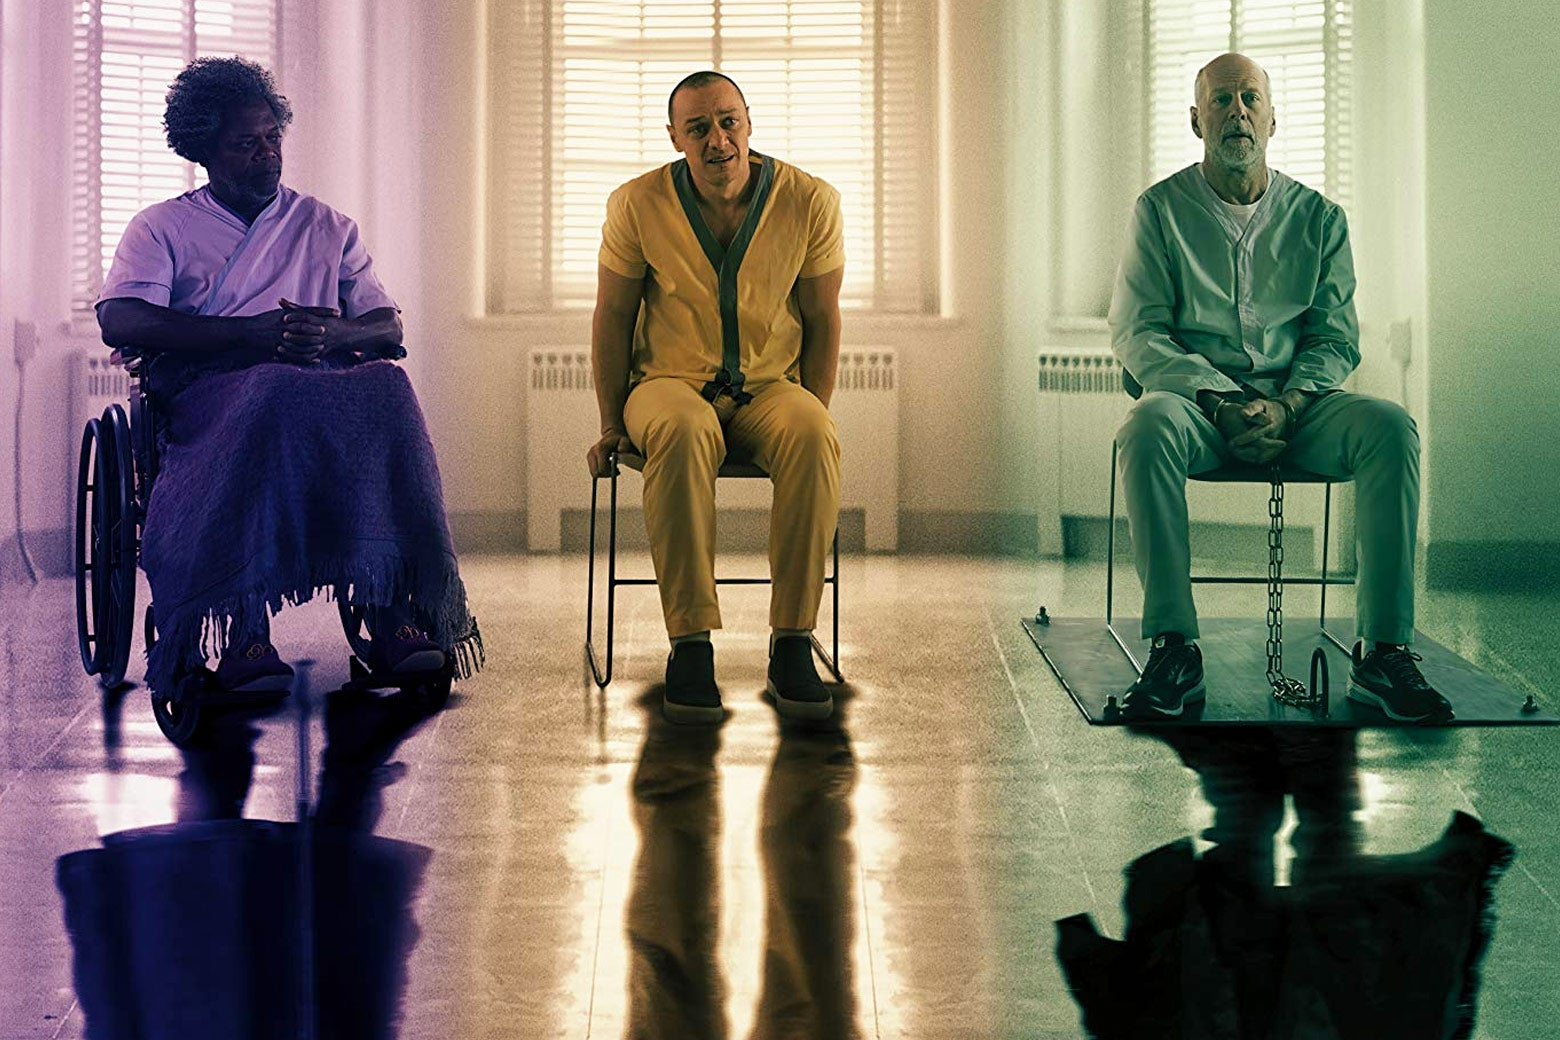 Bruce Willis, Samuel L. Jackson, and James McAvoy in Glass. The three men are seated next to each other in what appears to be a mental hospital.